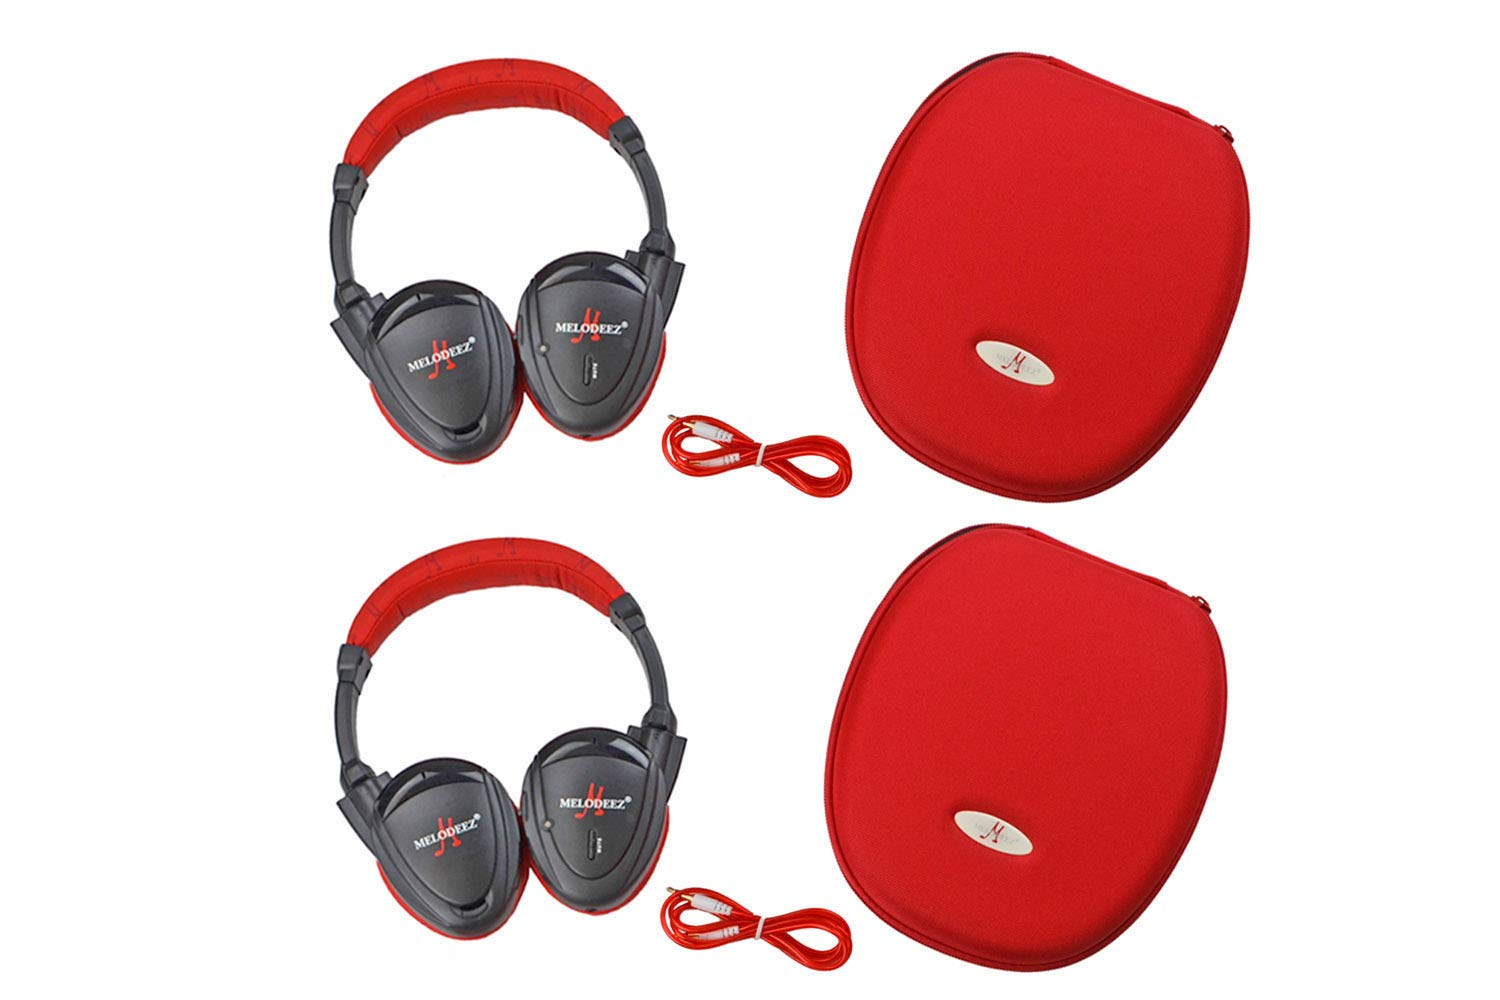 Wisconsin Auto Supply MDZHP-FF-RED Wireless Headphone (2 Channel Fold Flat DVD Player with Case and 3.5 mm Auxiliary Cord), 2 Pack by Wisconsin Auto Supply